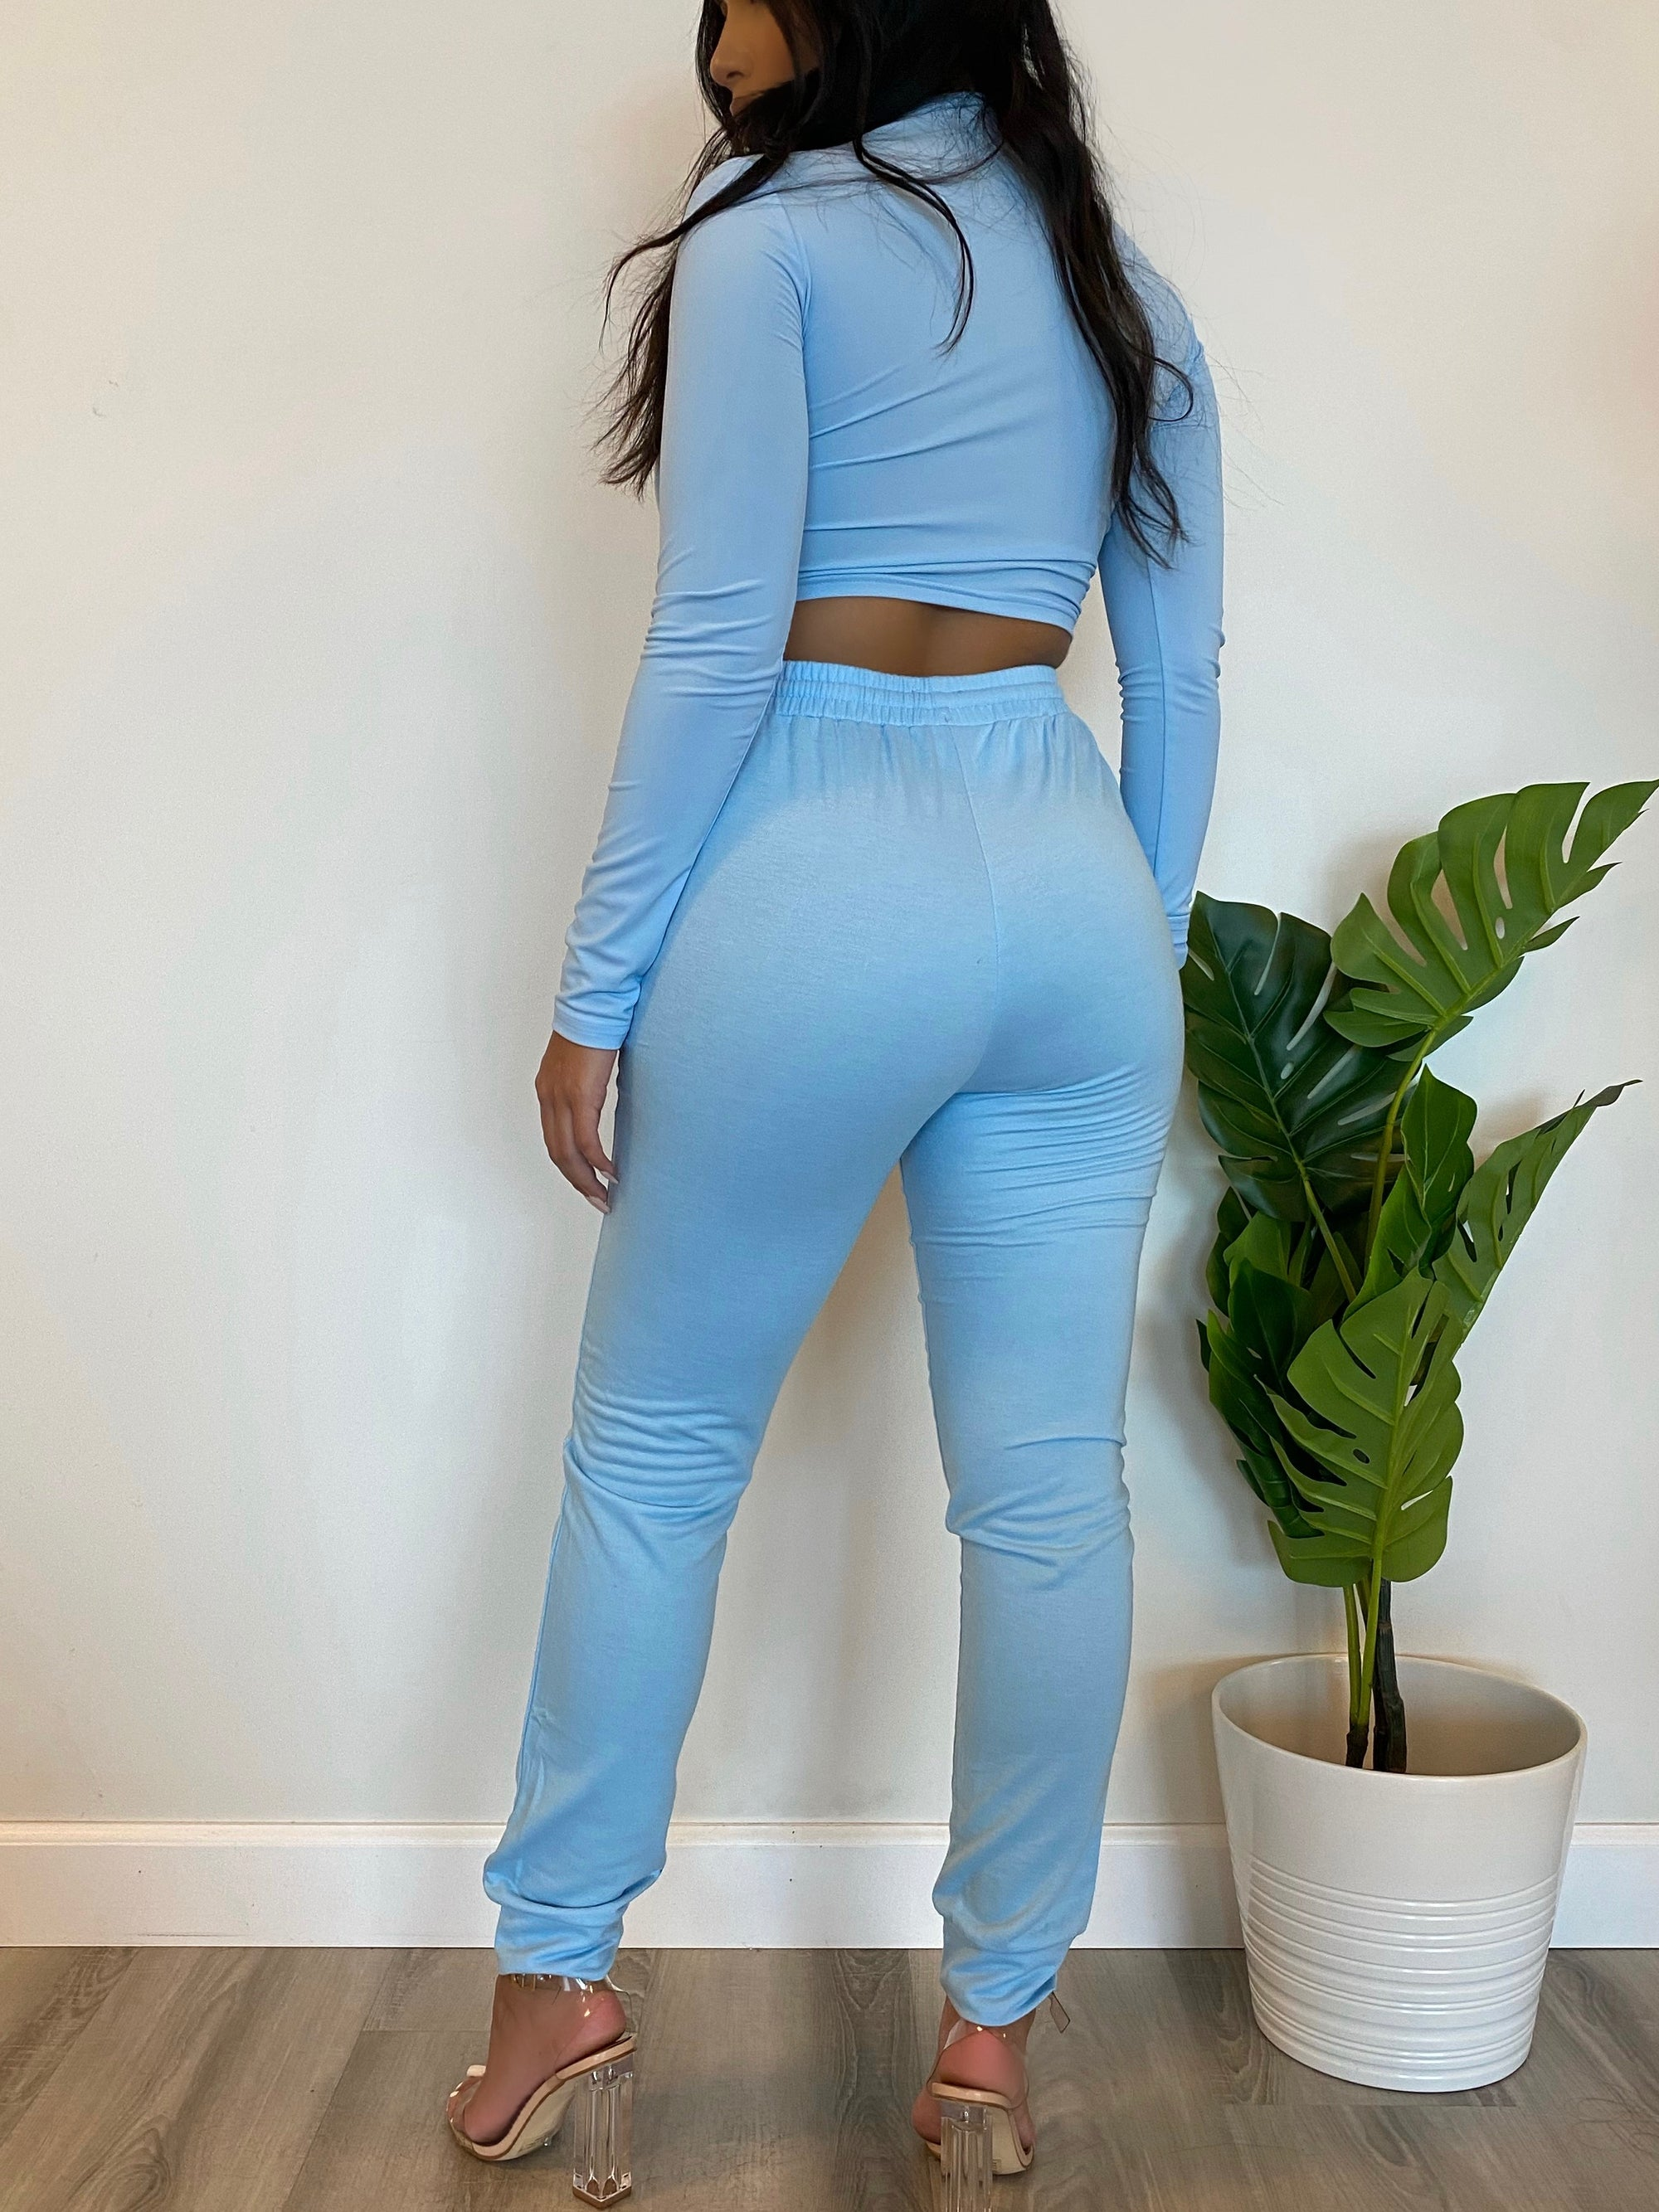 blue 2 piece, long sleeve crop top, front zipper, collar top, high waist joggers, drawstring